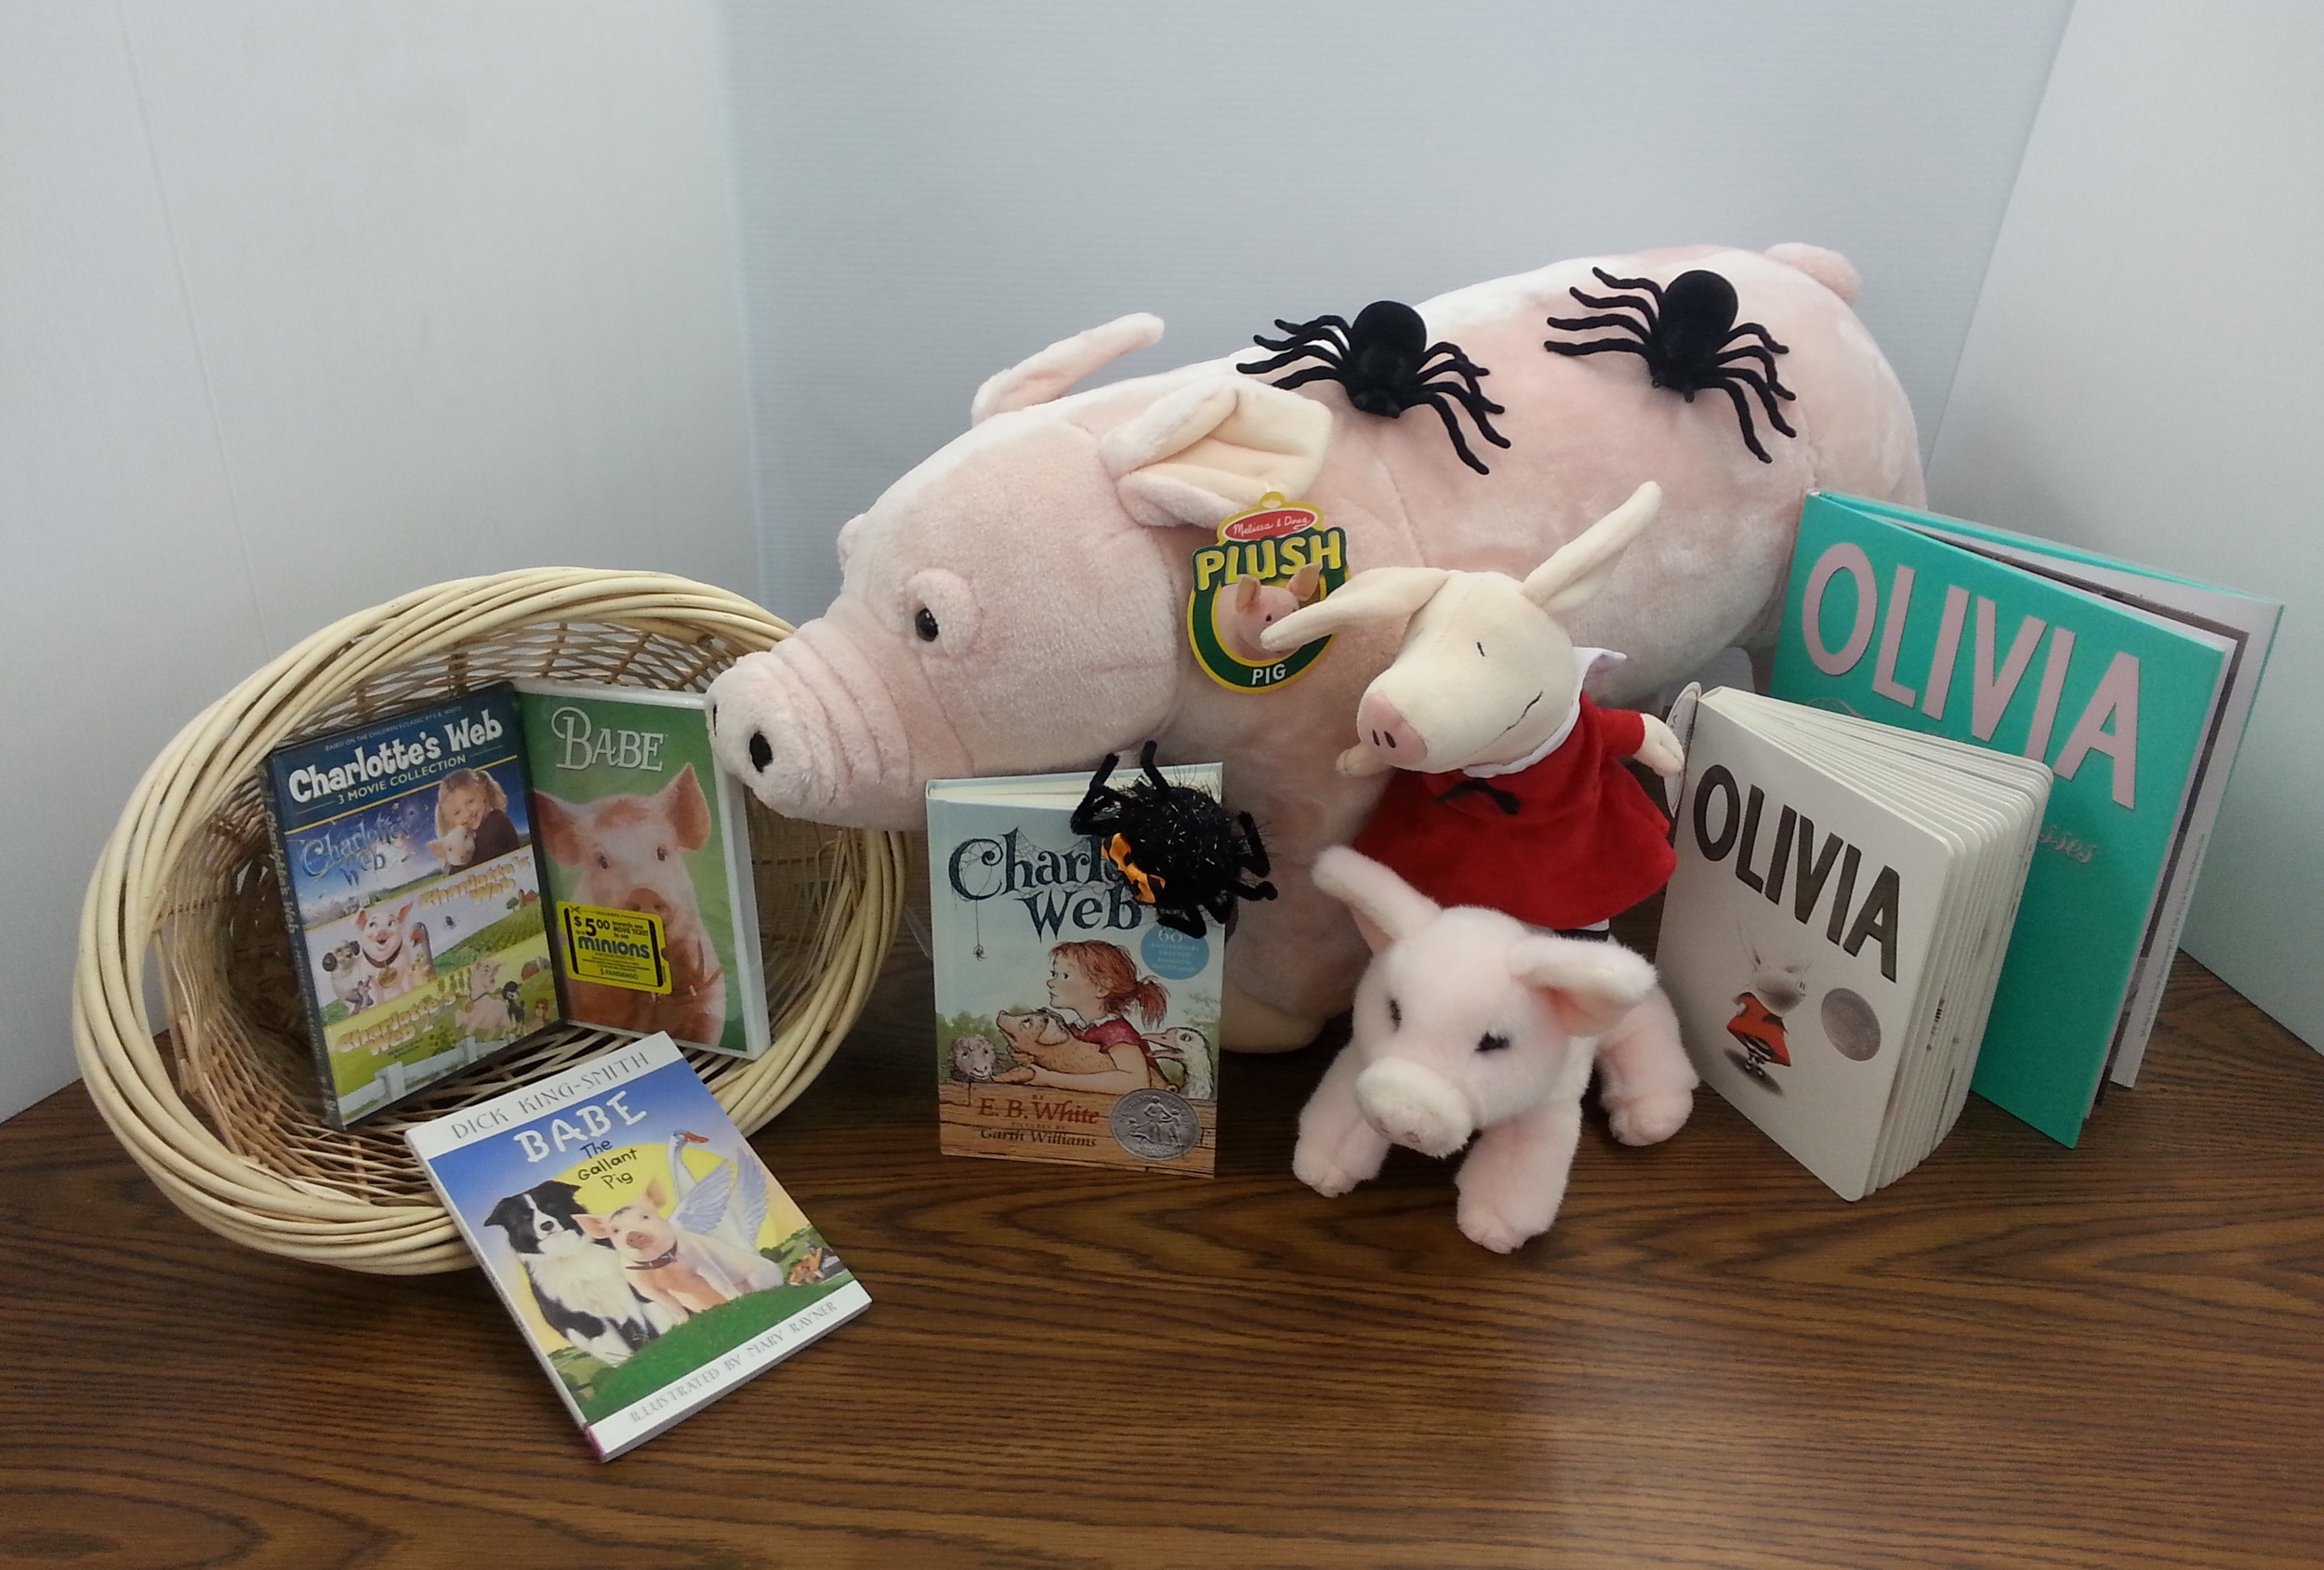 #21: Learning About 3 Famous Pigs